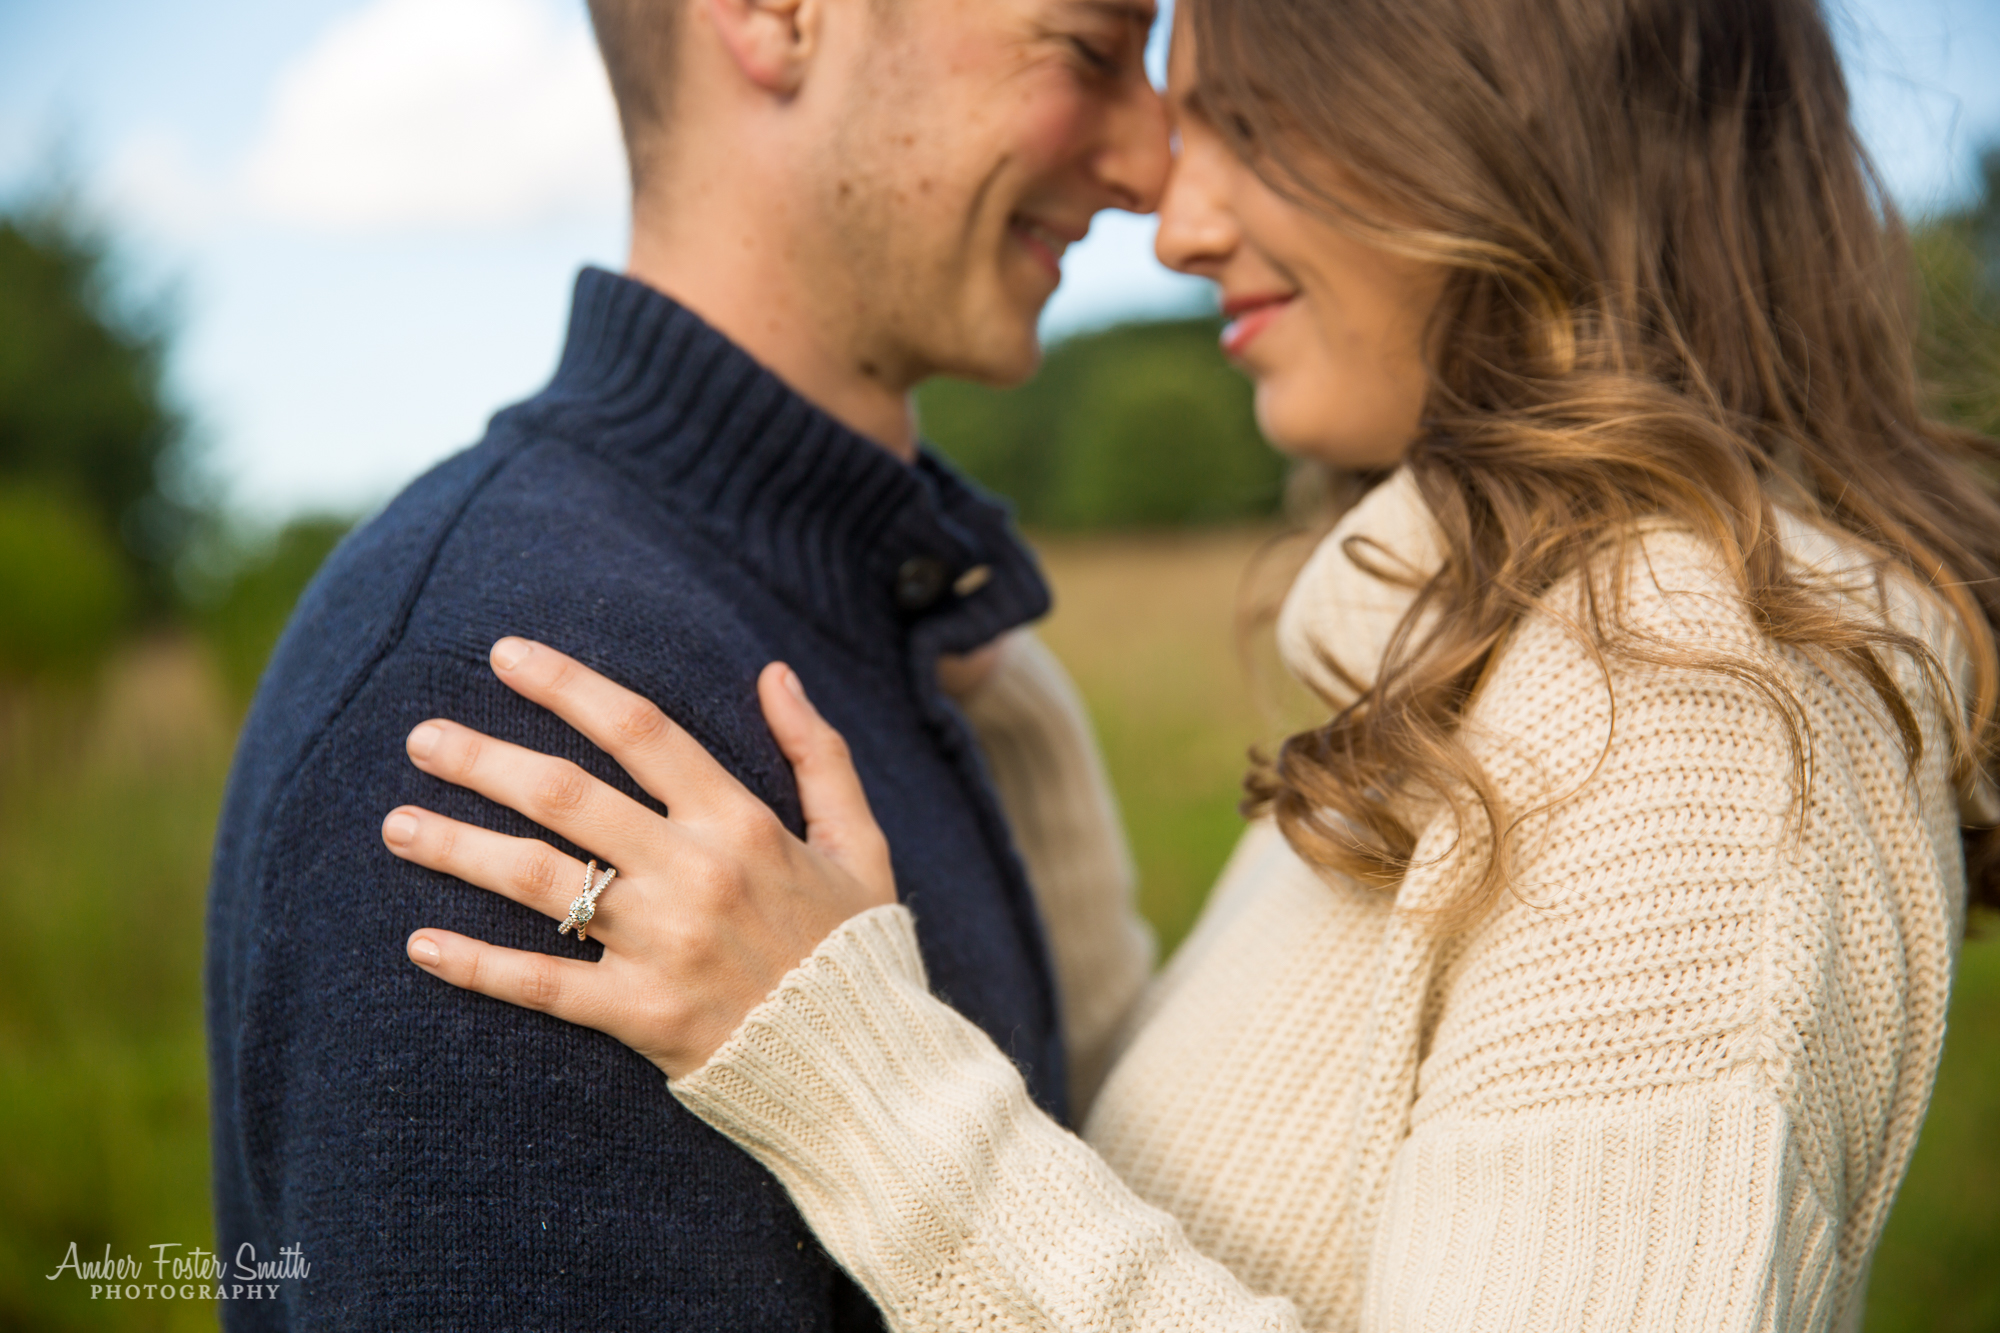 Amber Foster Smith Photography - Holly Springs, NC | Holly Springs Engagement and Wedding Photographer